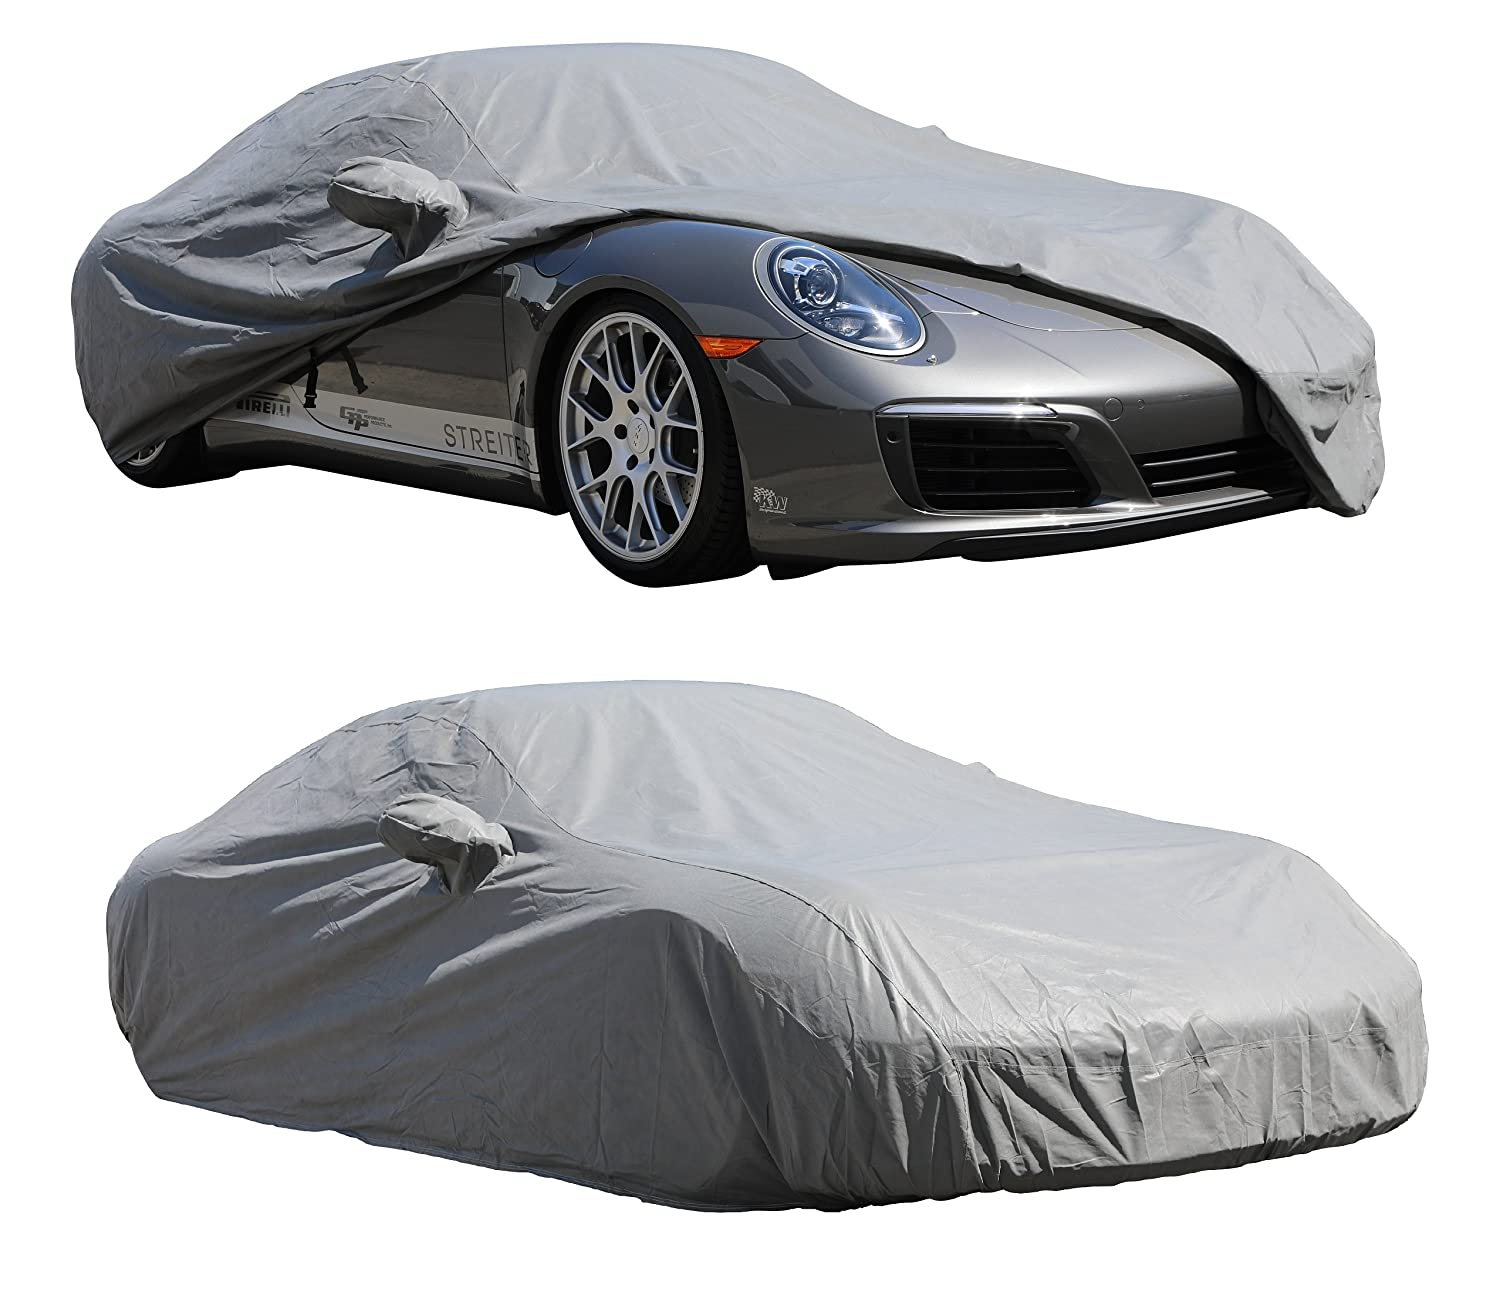 XtremeCoverPro Custom Car Cover Series for Porsche 911 Coupe Targa Convertible Turbo S 991.1~991.2 2012~2018 – UV Resistant – Breathable Fabric (Dust-Black)